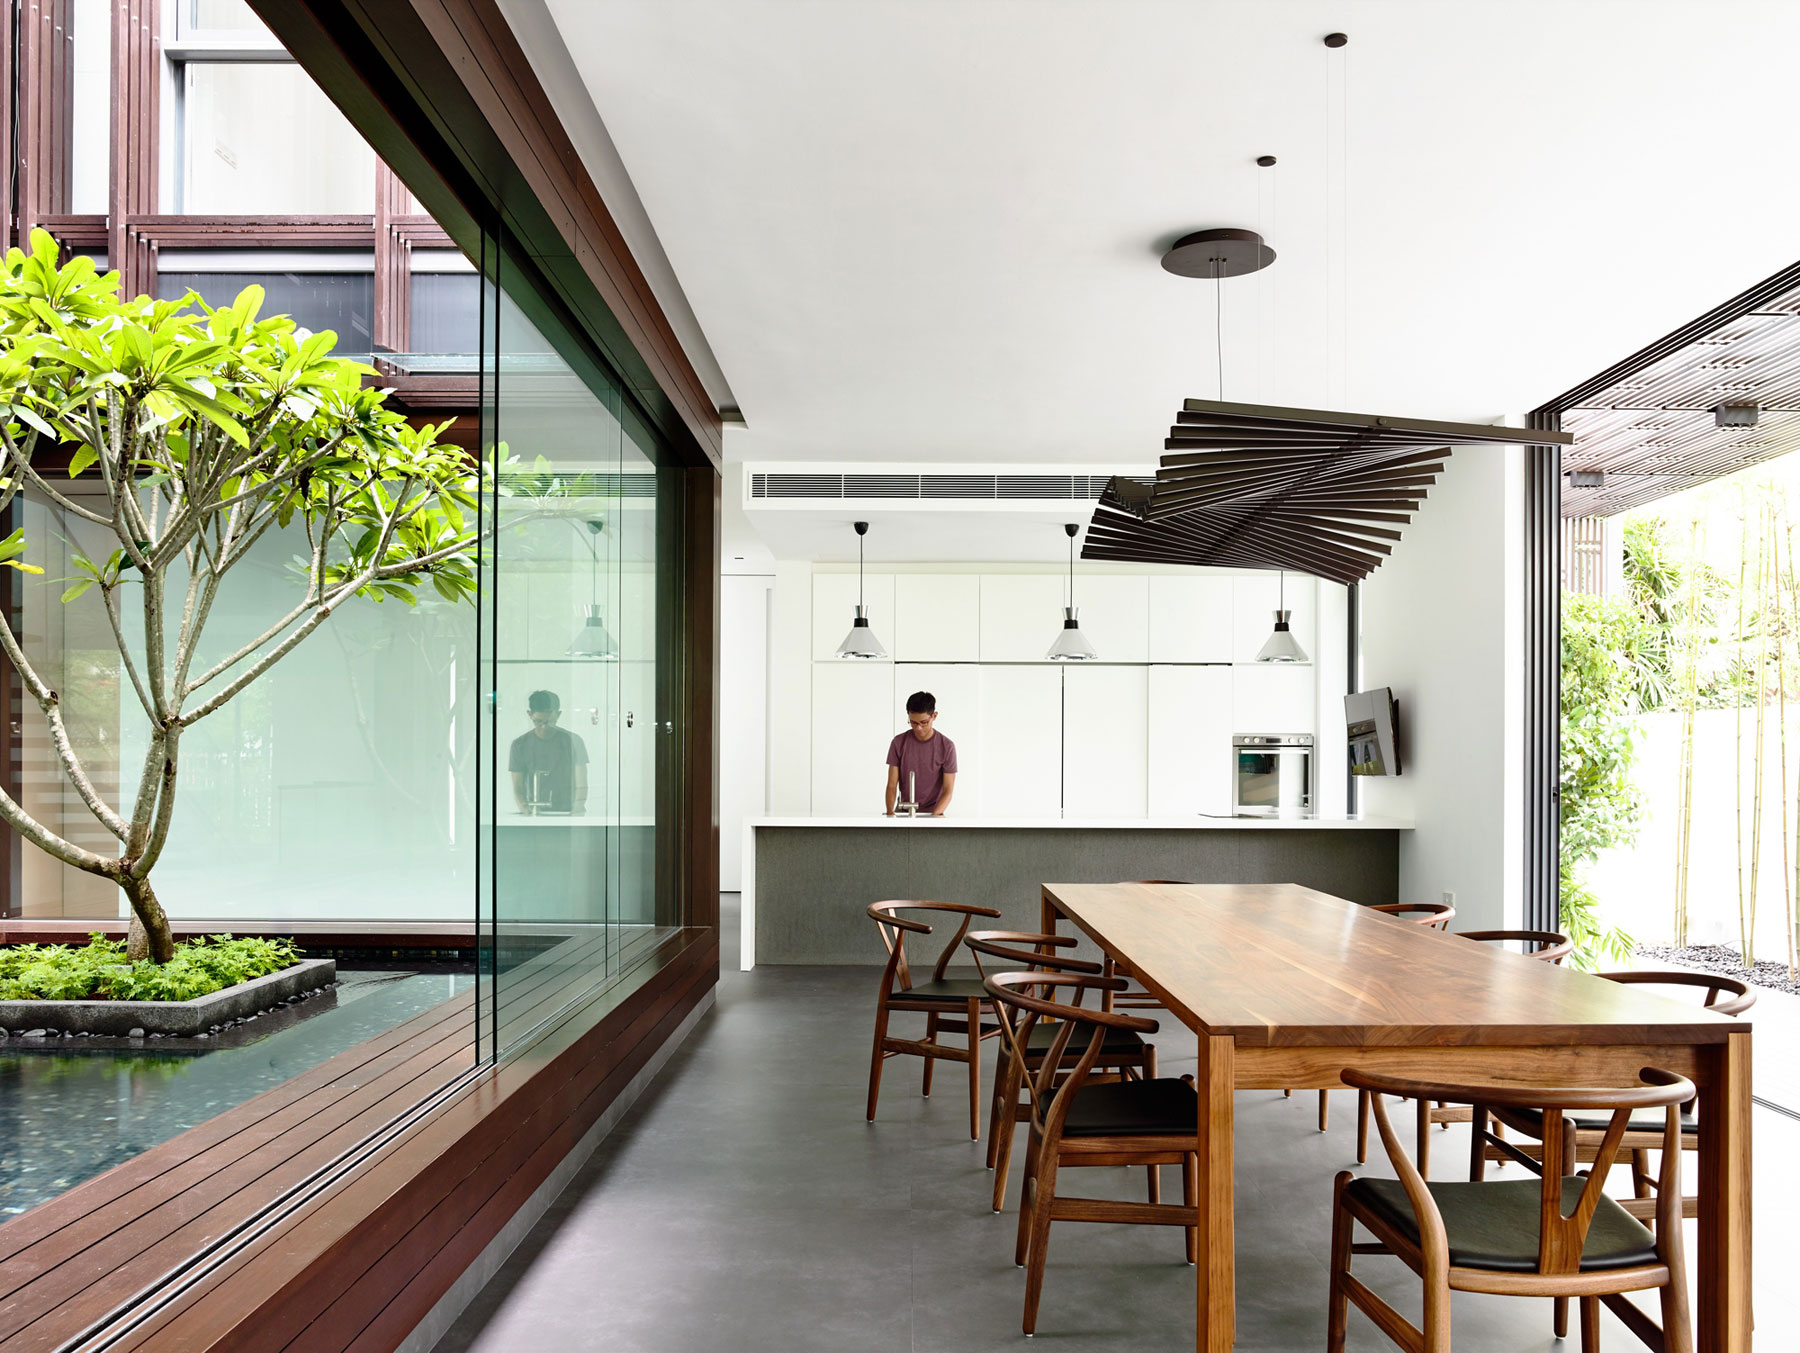 Vertical Court by HYLA Architects